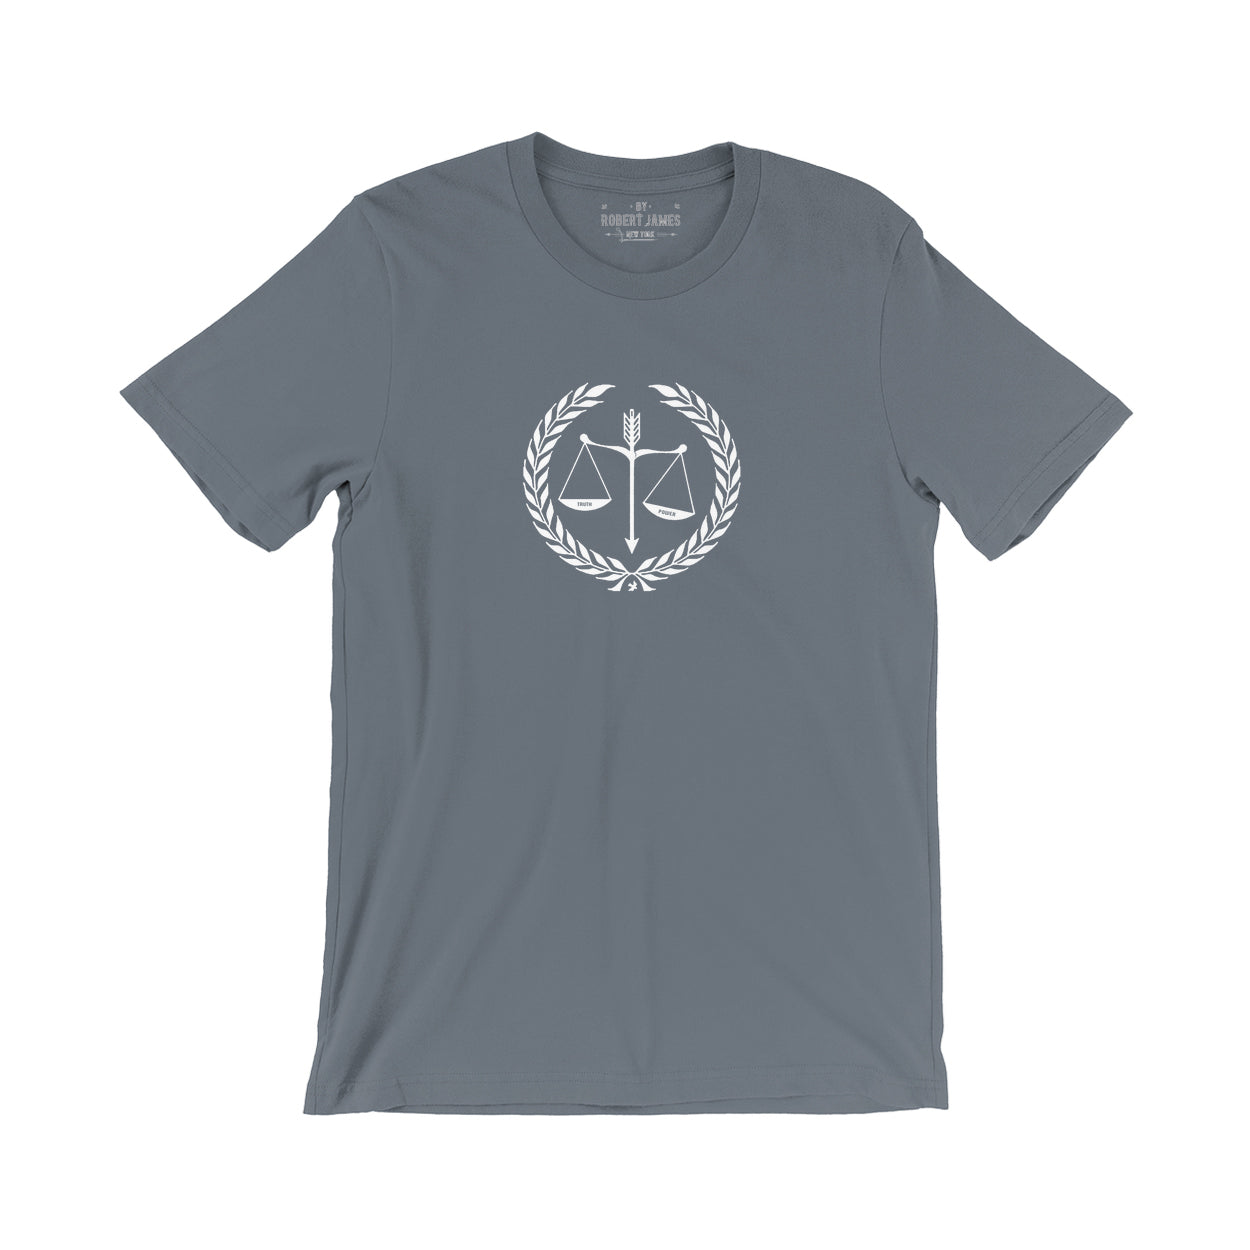 TRUTH IN JUSTICE // T-Shirts